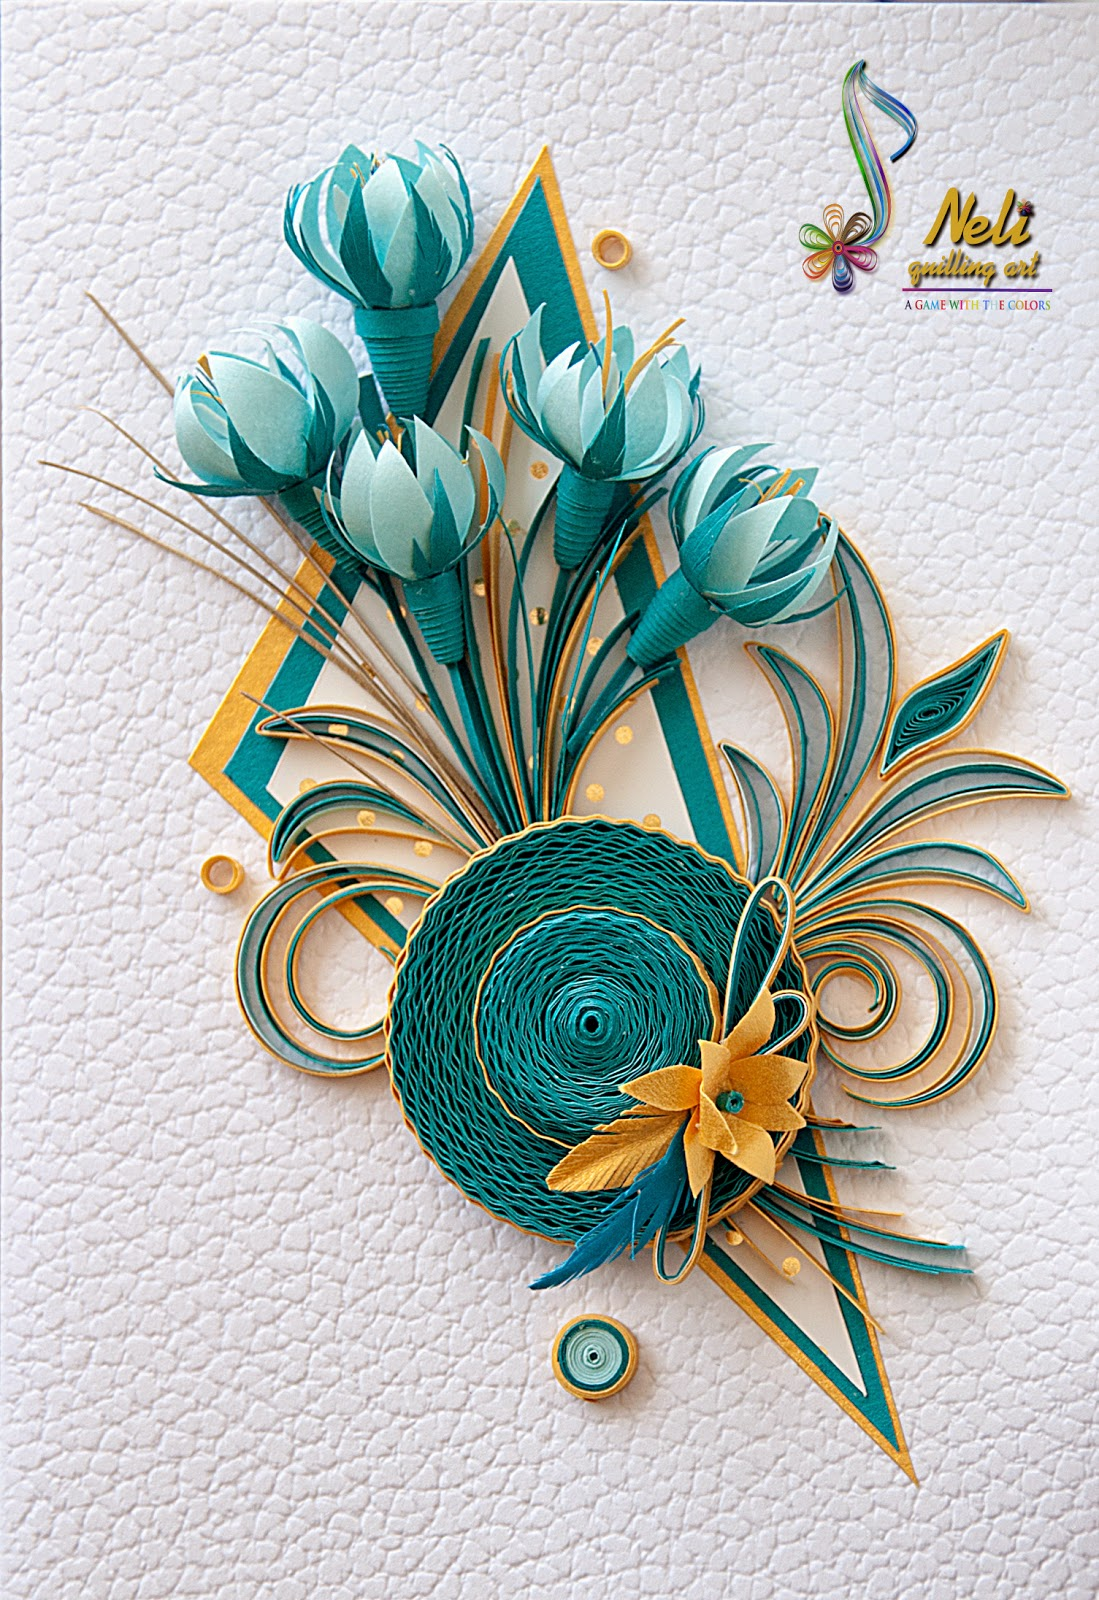 Neli quilling art quilling cards flowers for Quilling paper art